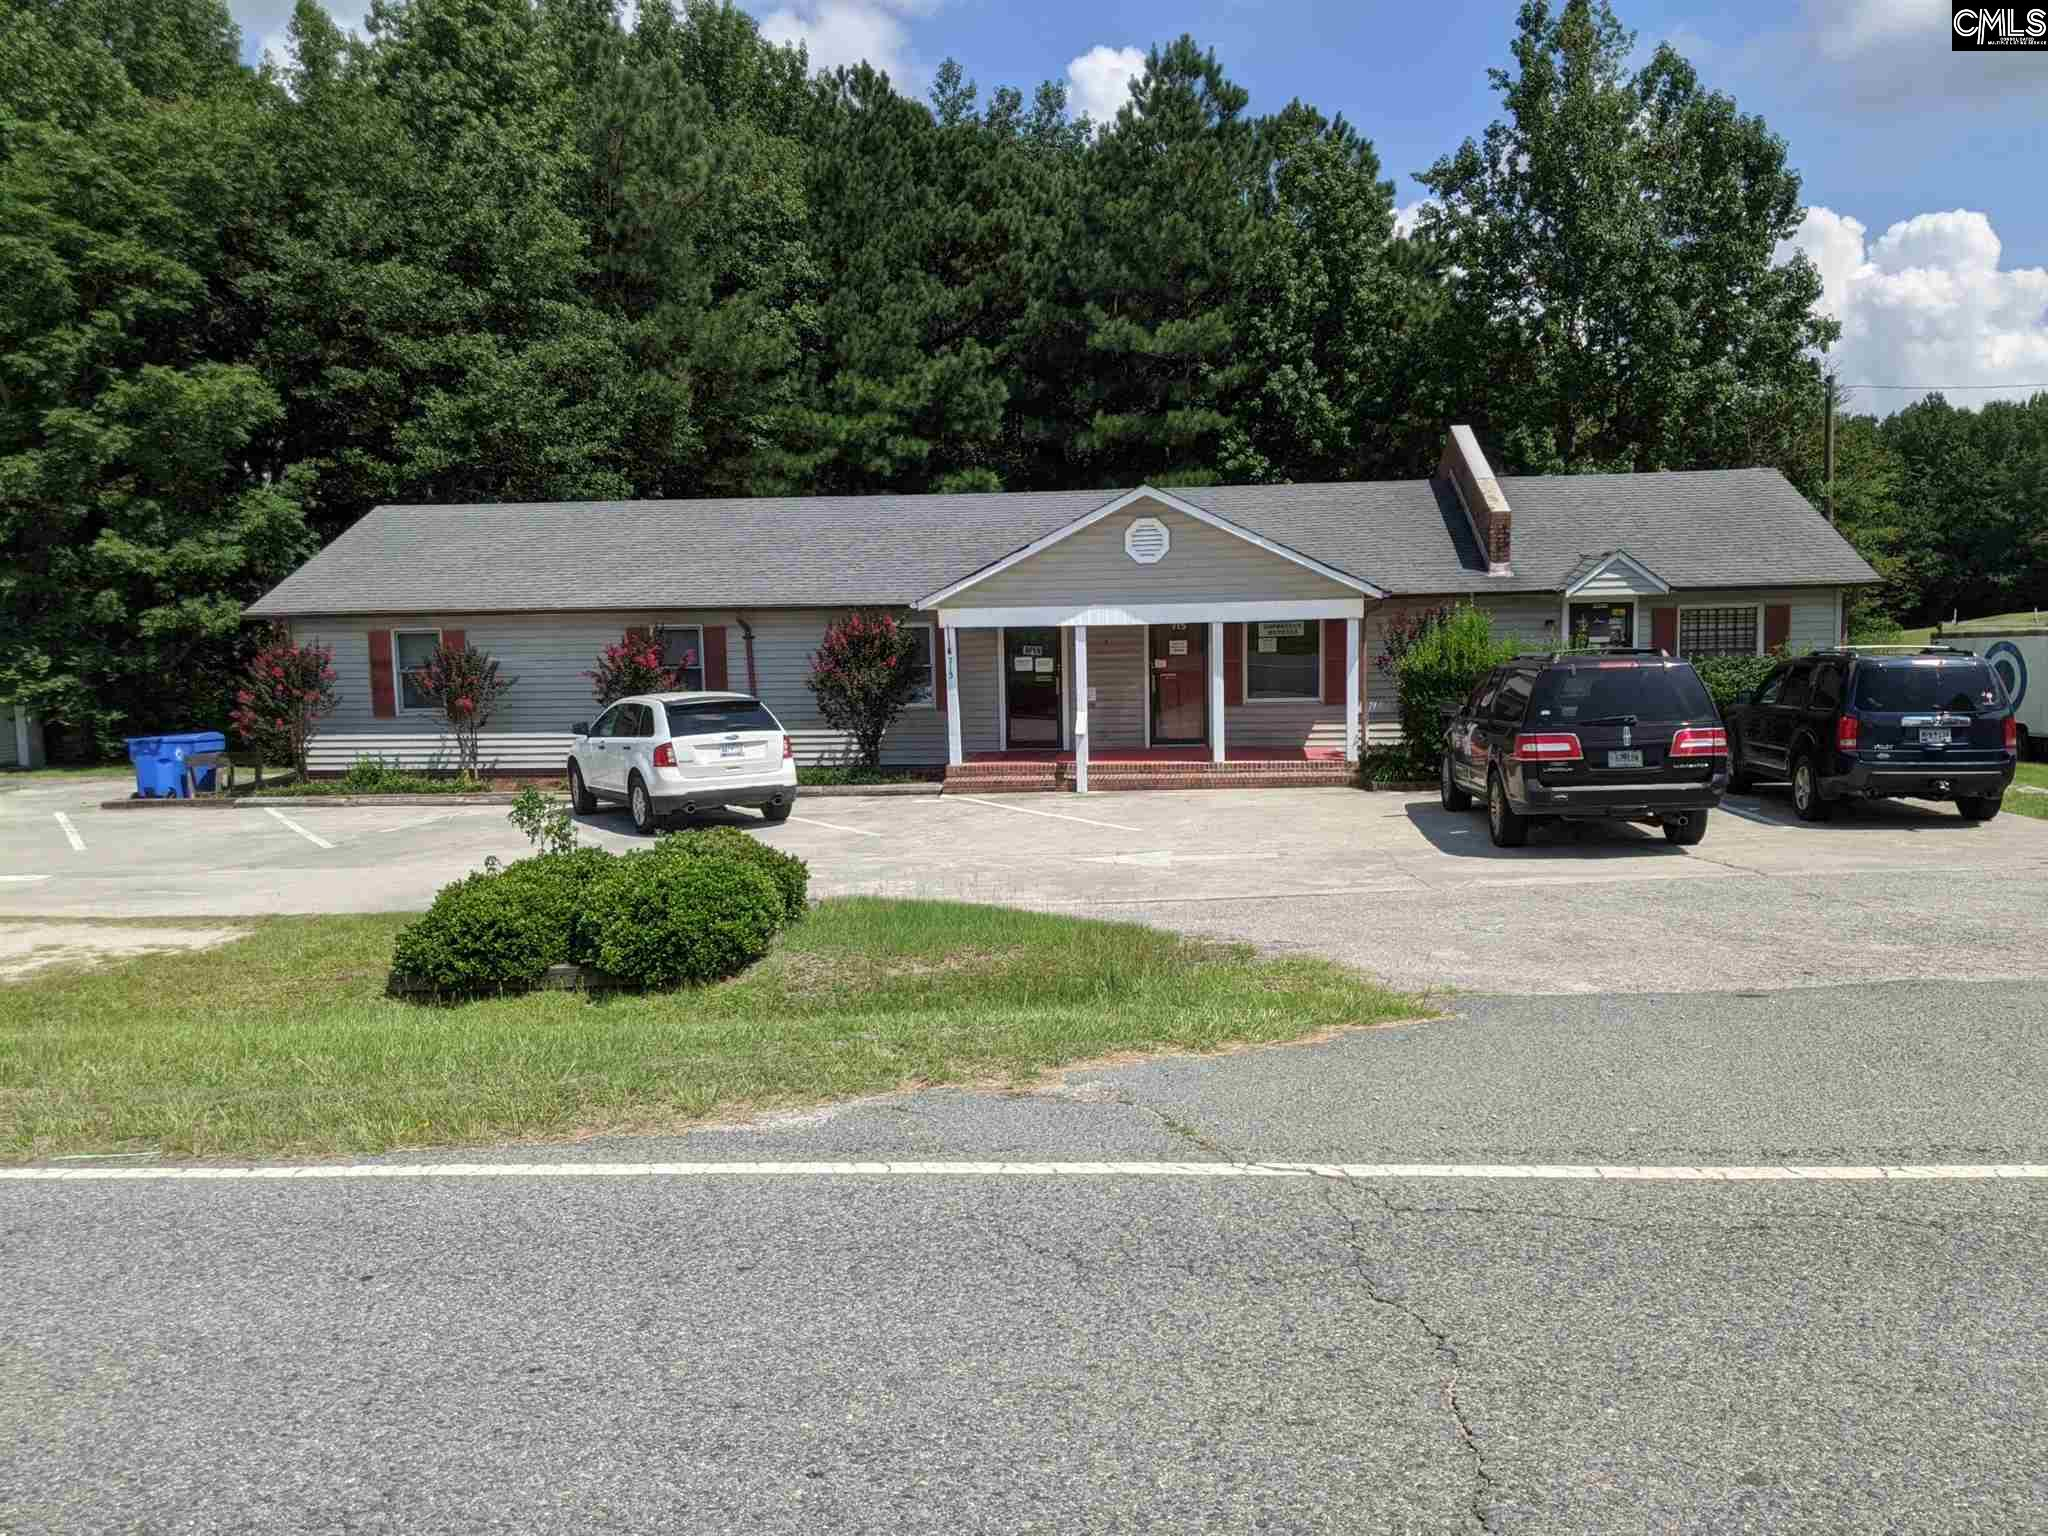 172 S Pearl St Pageland, SC 29728